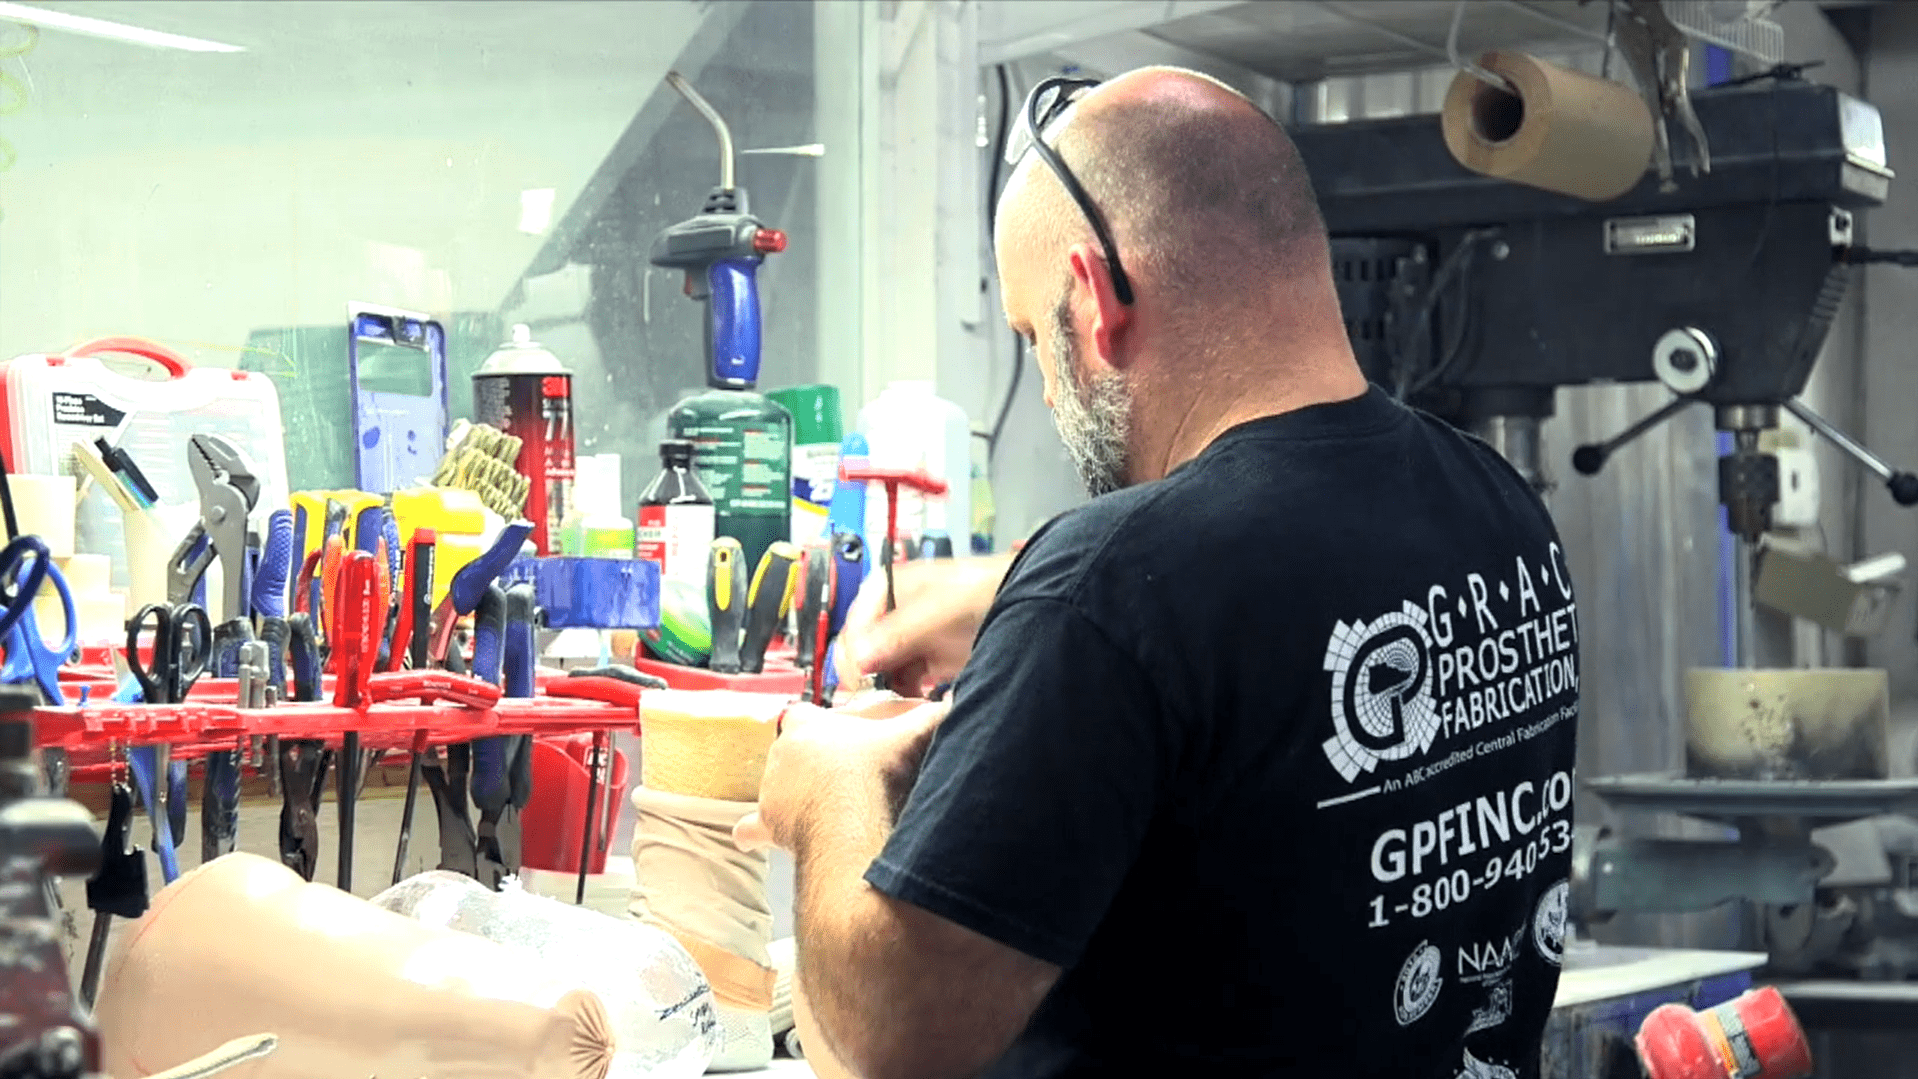 Grace Prosthetics Fabrication